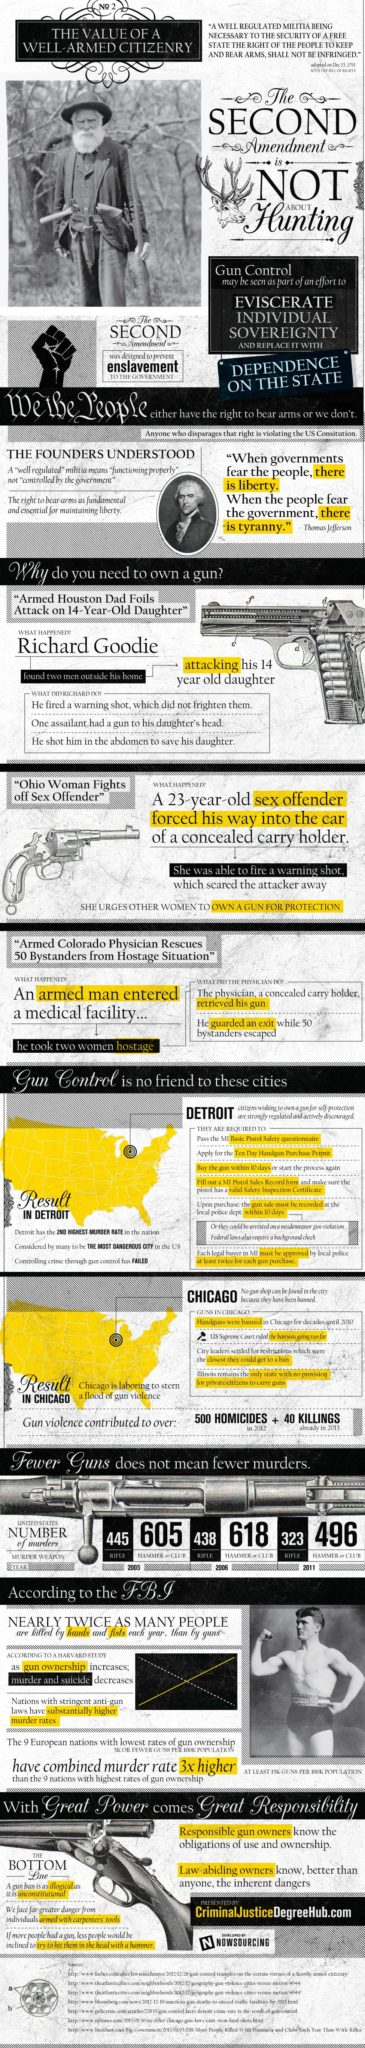 The Value of Well-Armed Citizenry